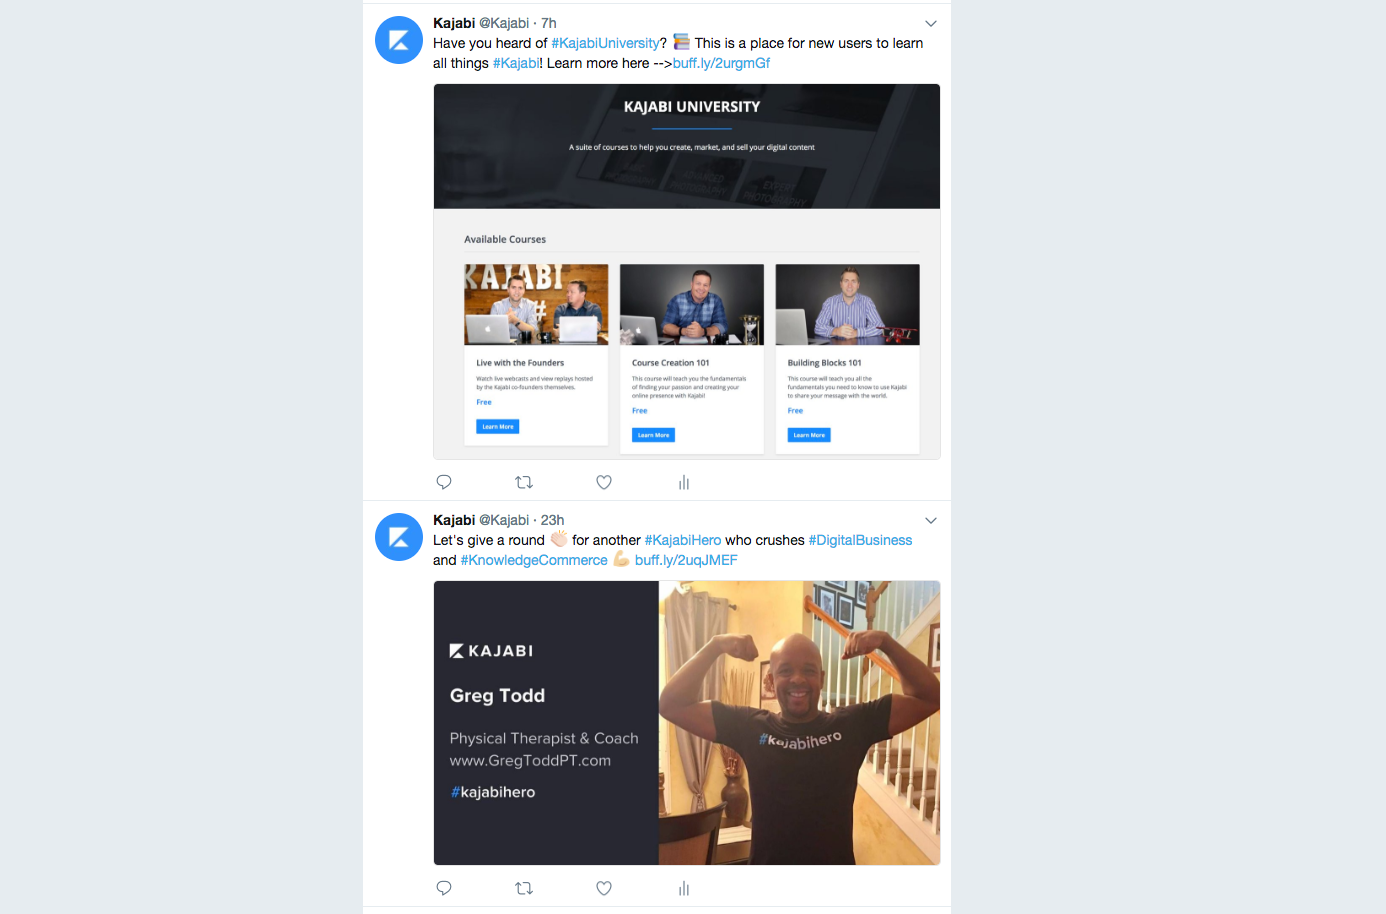 Curate Your Twitter Feed With Visuals